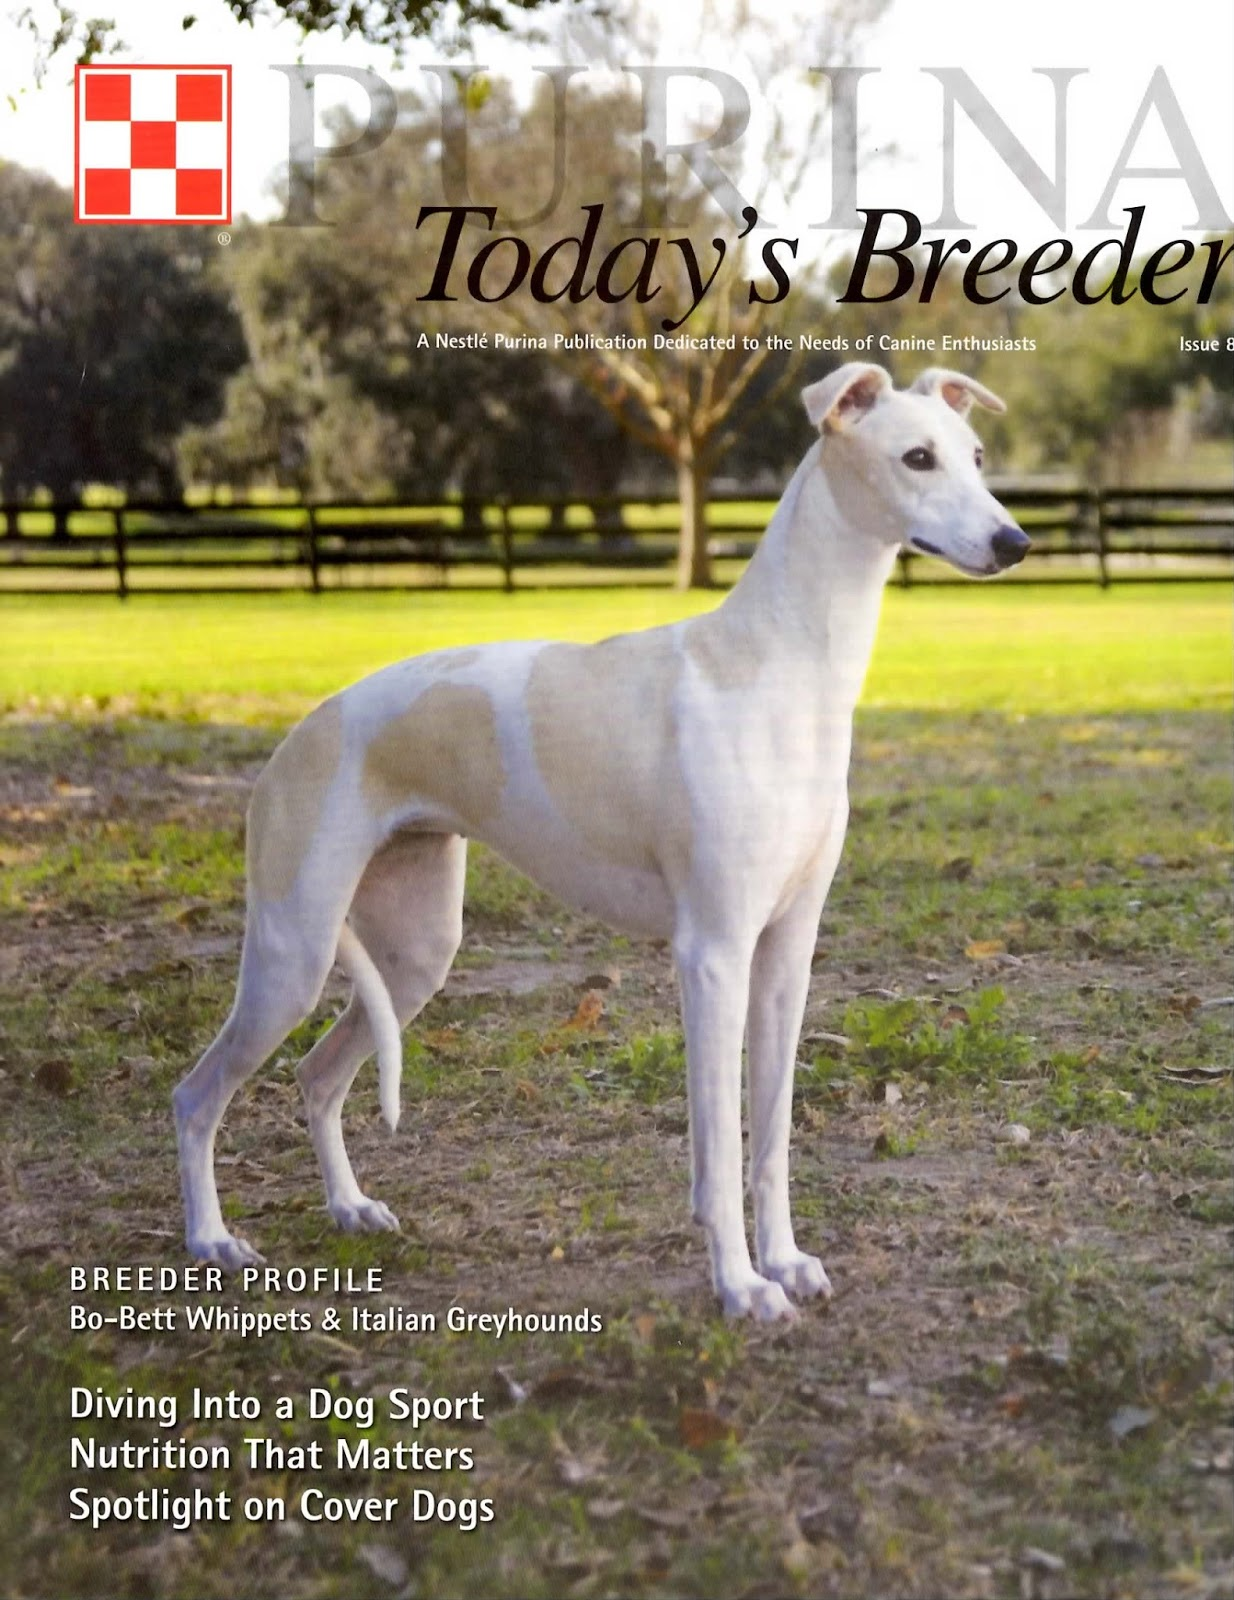 Today's Breeder Magazine